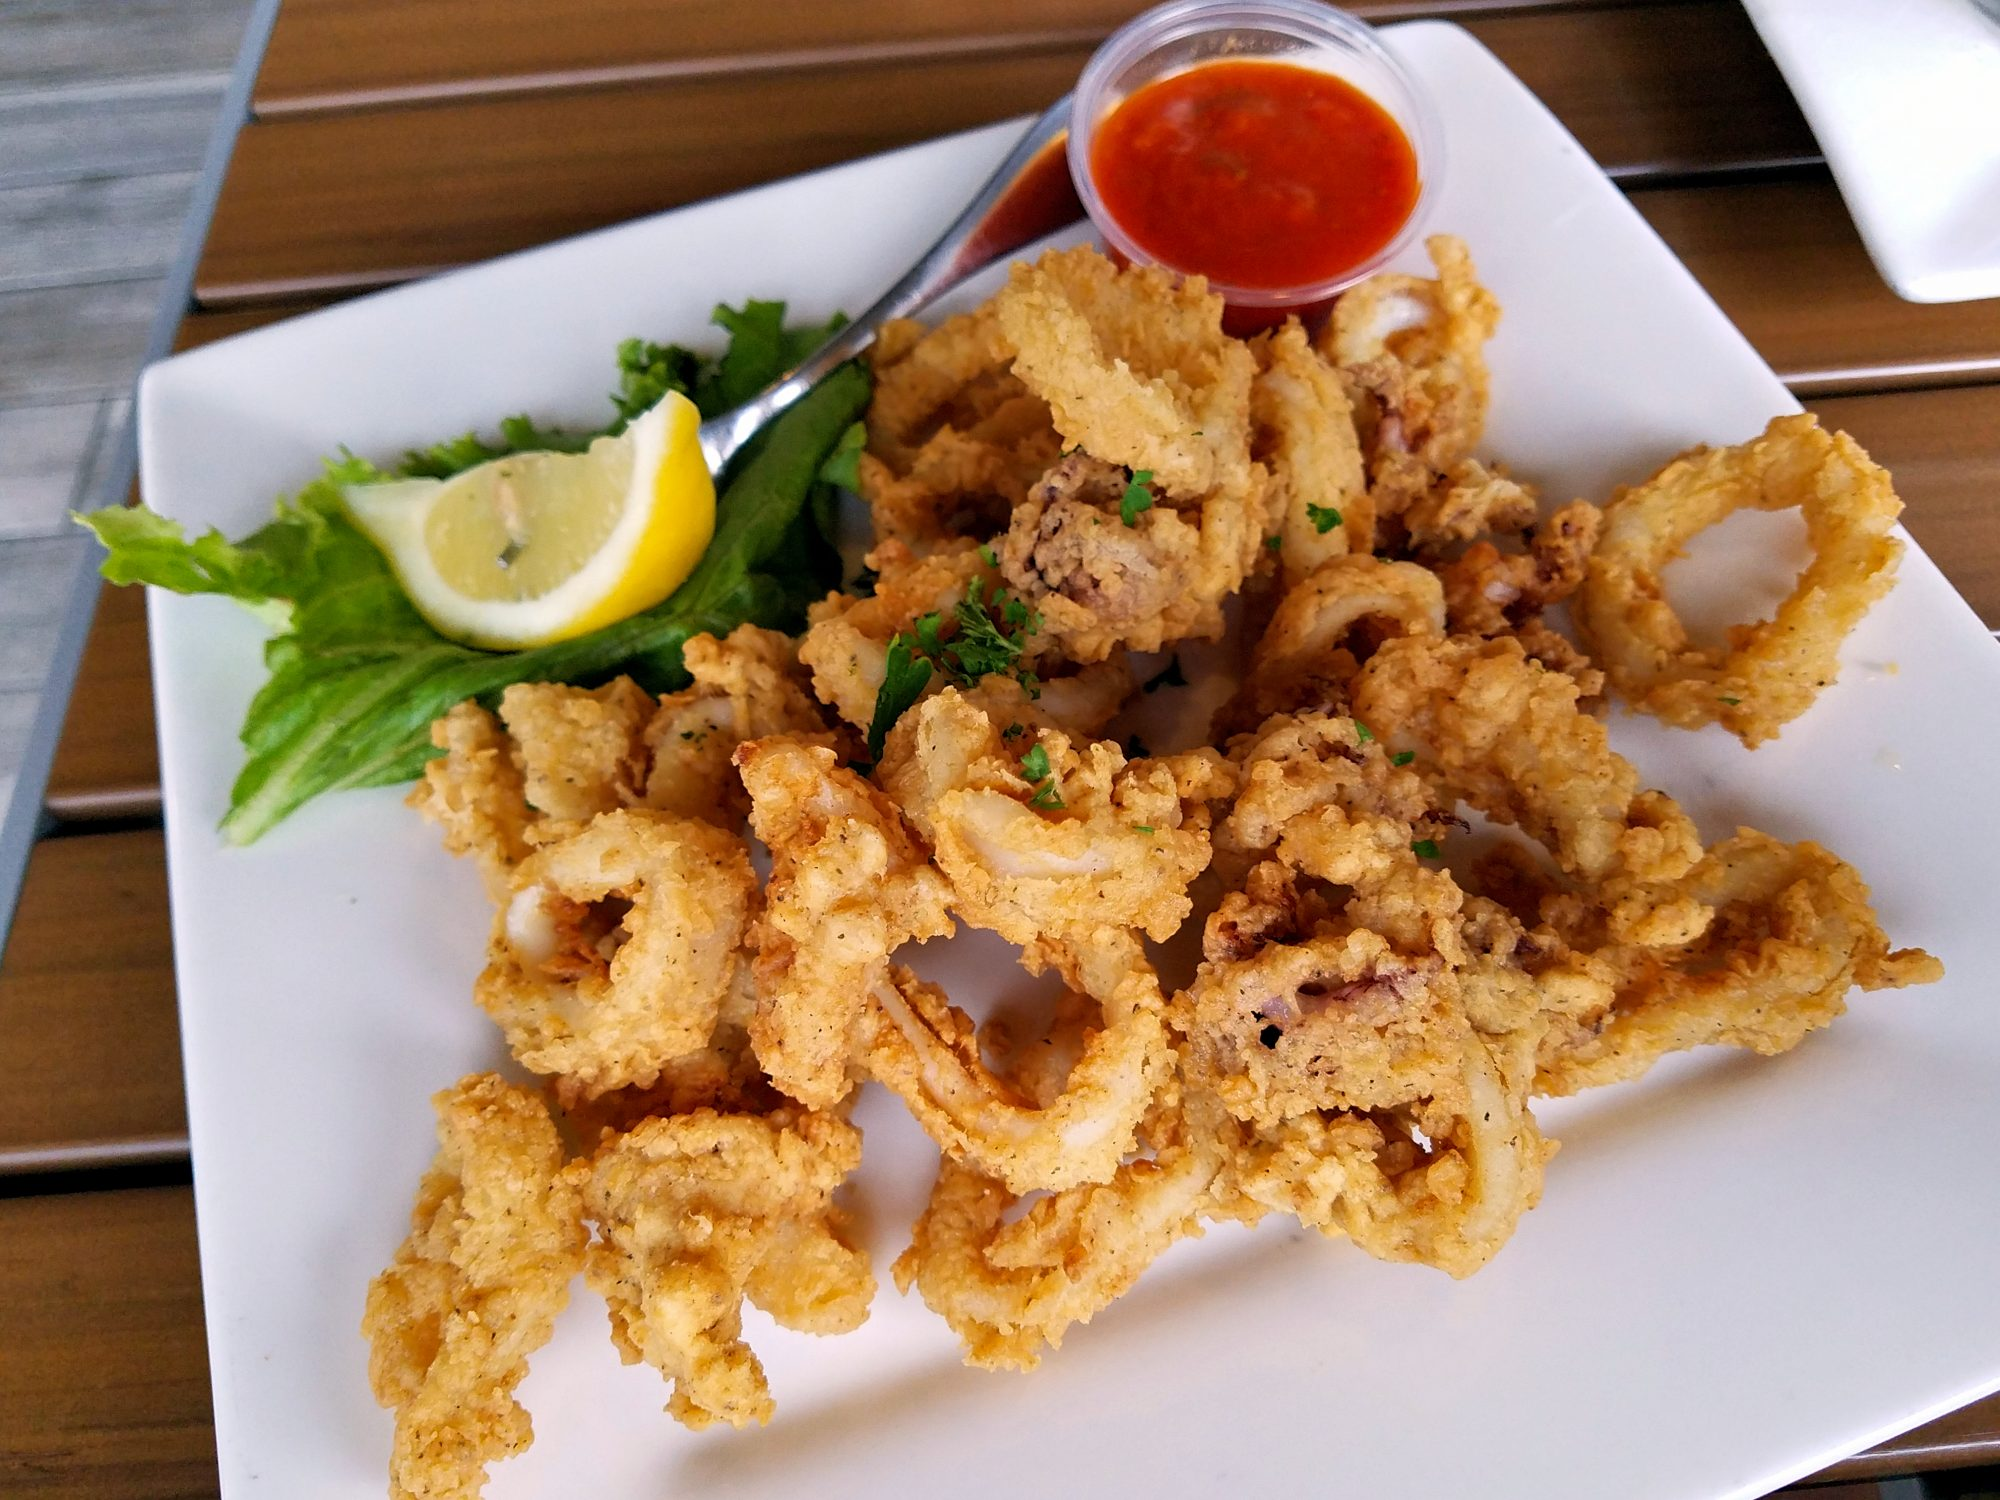 Calamari Getty 10/28/19